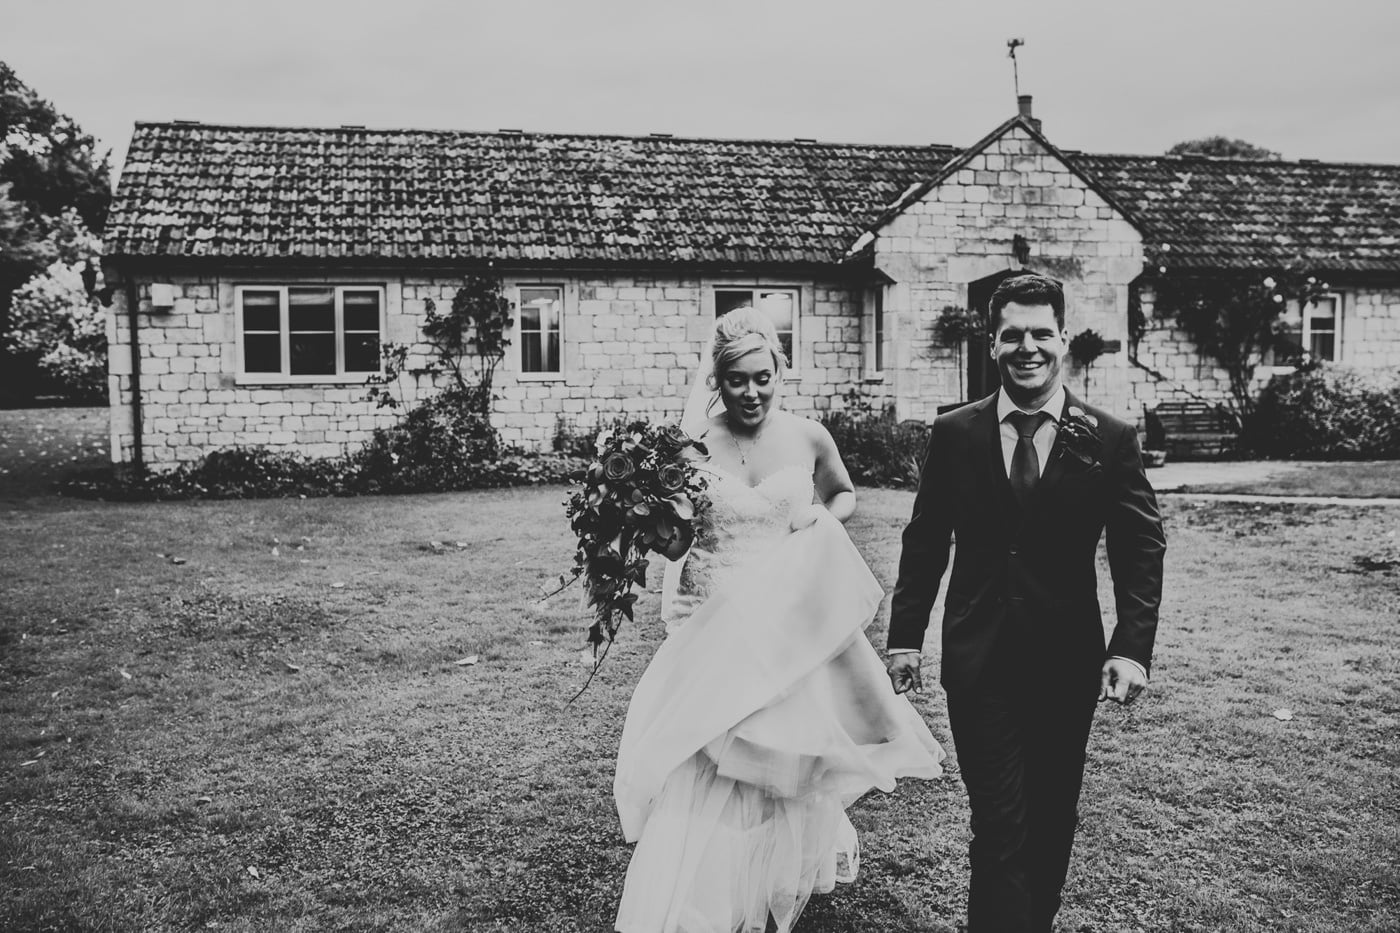 Natalie and Rob, Widbrook Grange, Wiltshire 8